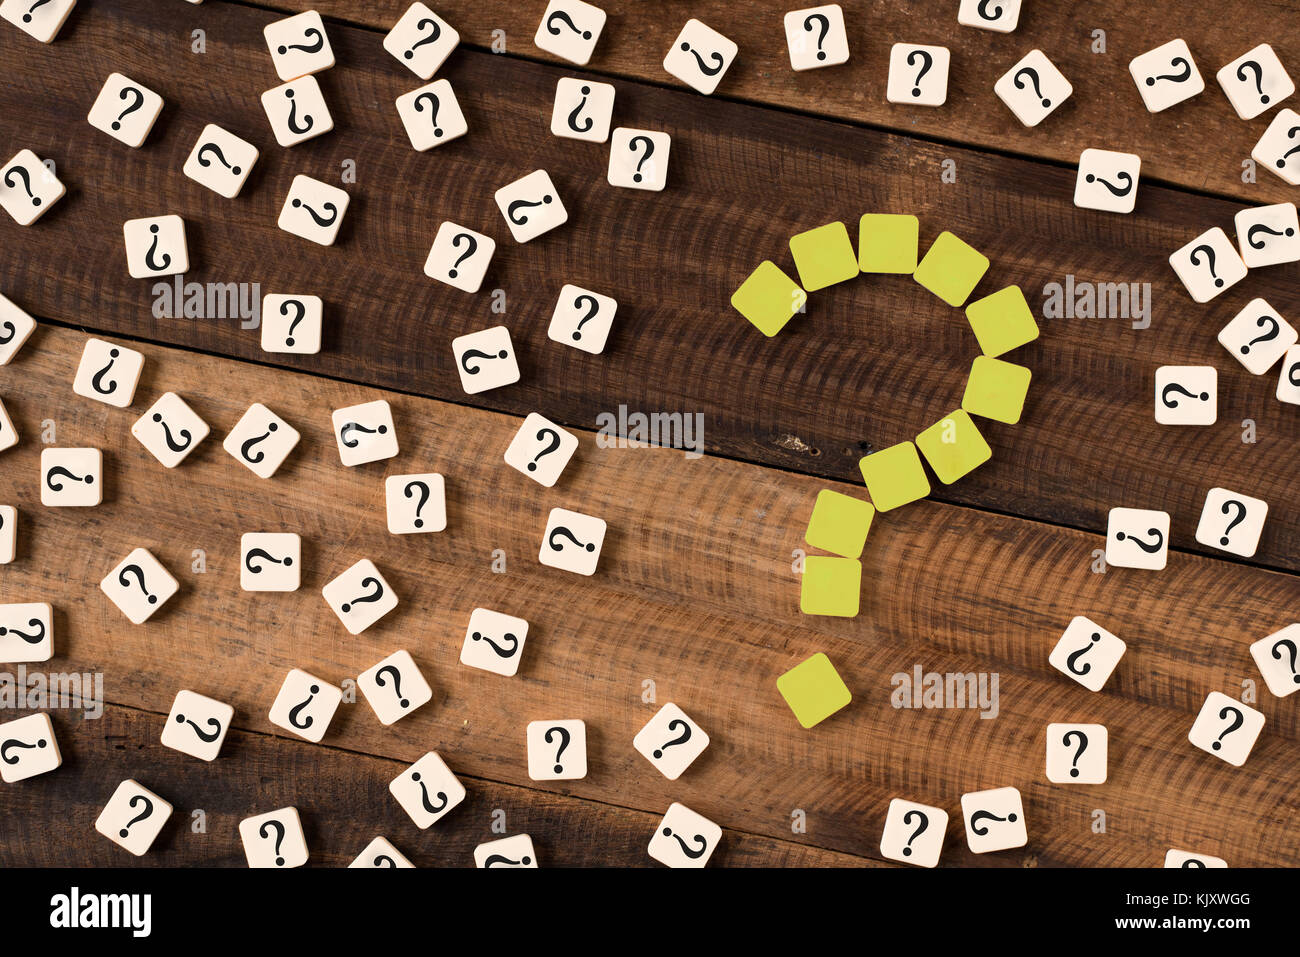 Question mark on wooden table background. Question mark on alphabet tiles - Stock Image